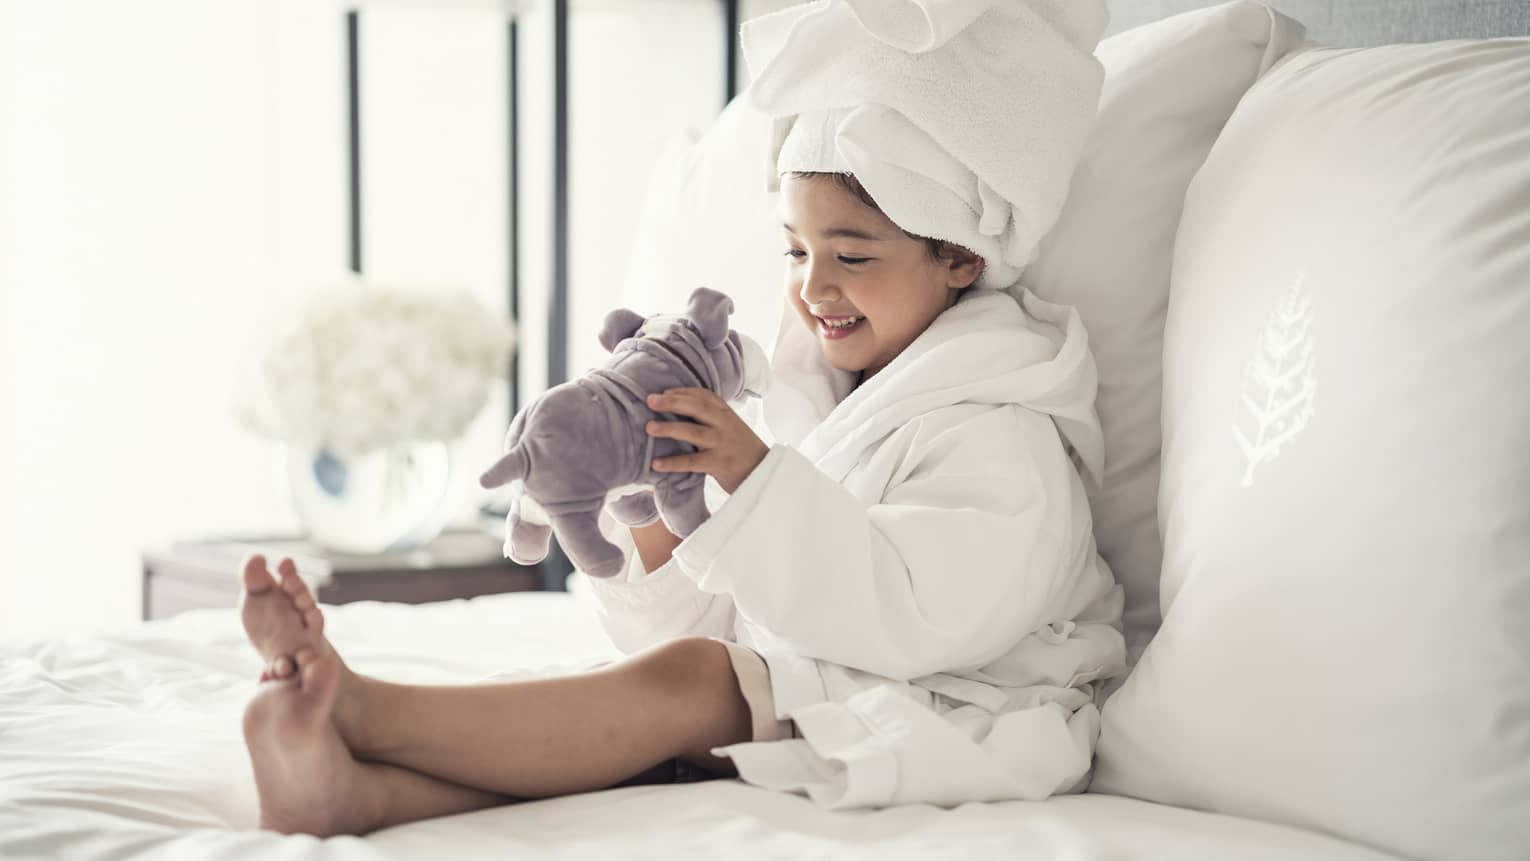 Young girl wearing a white bathrobe with towel wrap plays with plush dog toy on bed